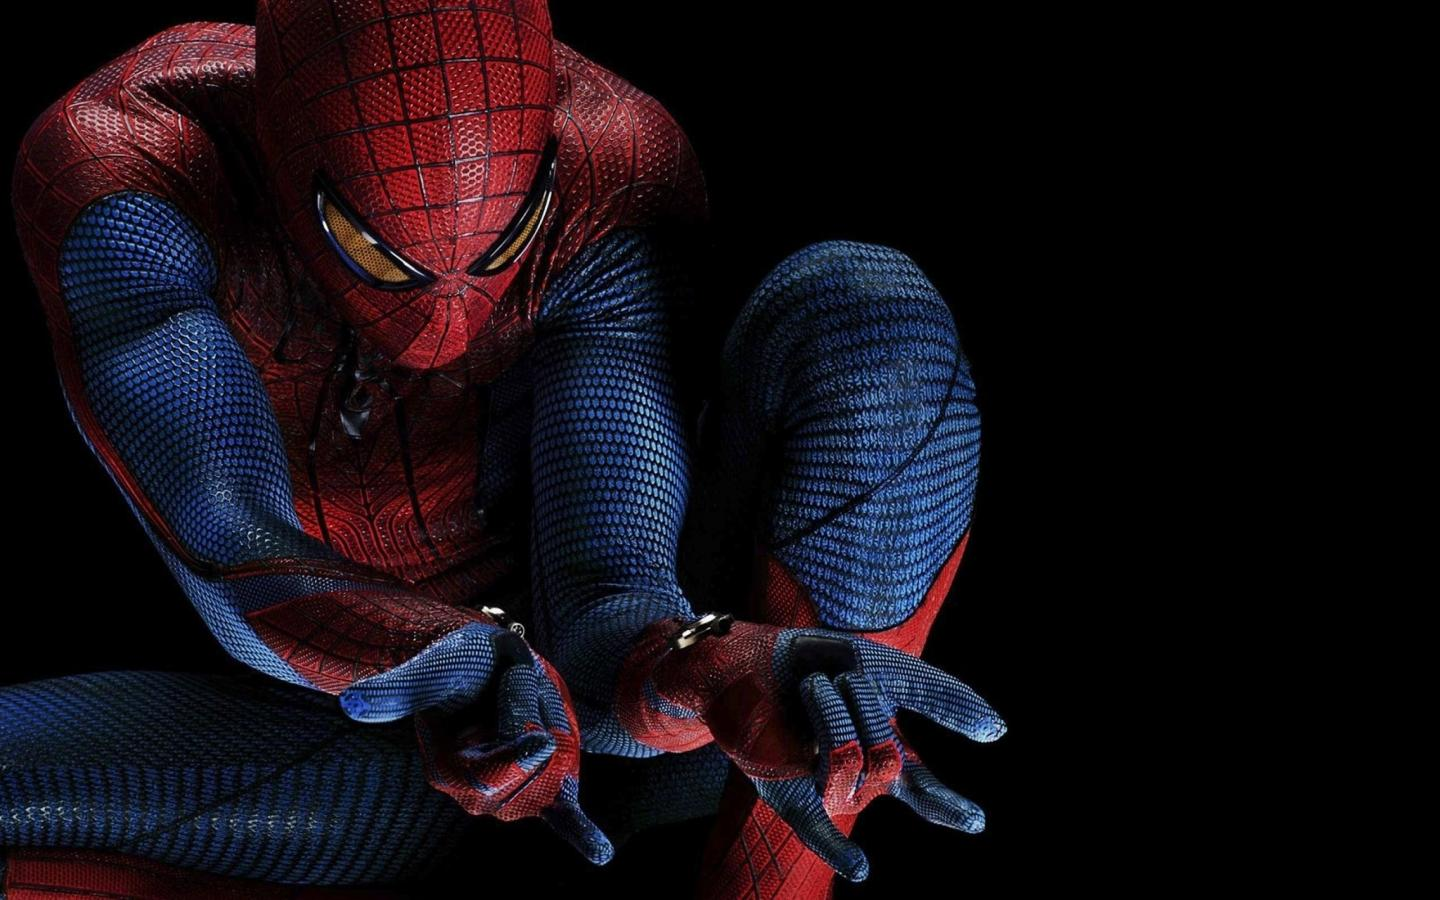 HD WALLPAPERS: Spider Man Wallpapers 2013